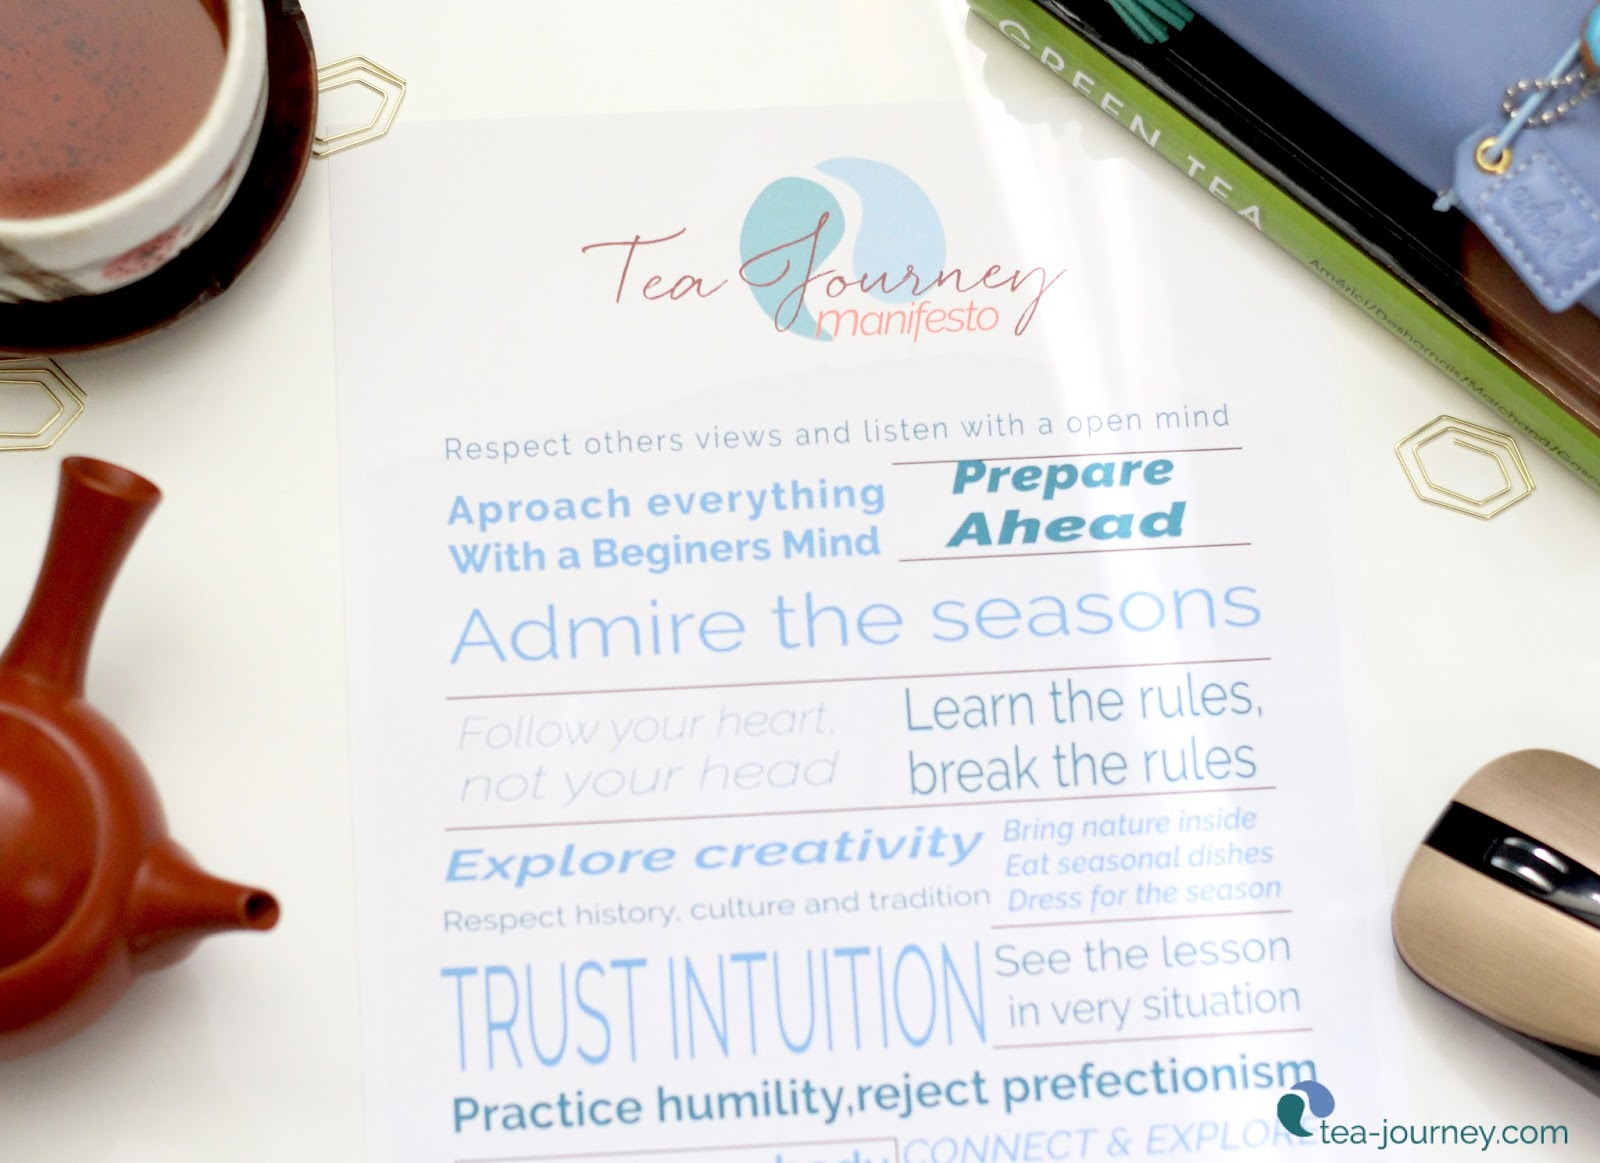 In this modern age we are in need of a Tea Journey Manifesto to guide our practice with tea and its lifestyle. Digital Table is about community and everyone coming together for a common cause through tea and the cultures, traditions and history that surrounds it.